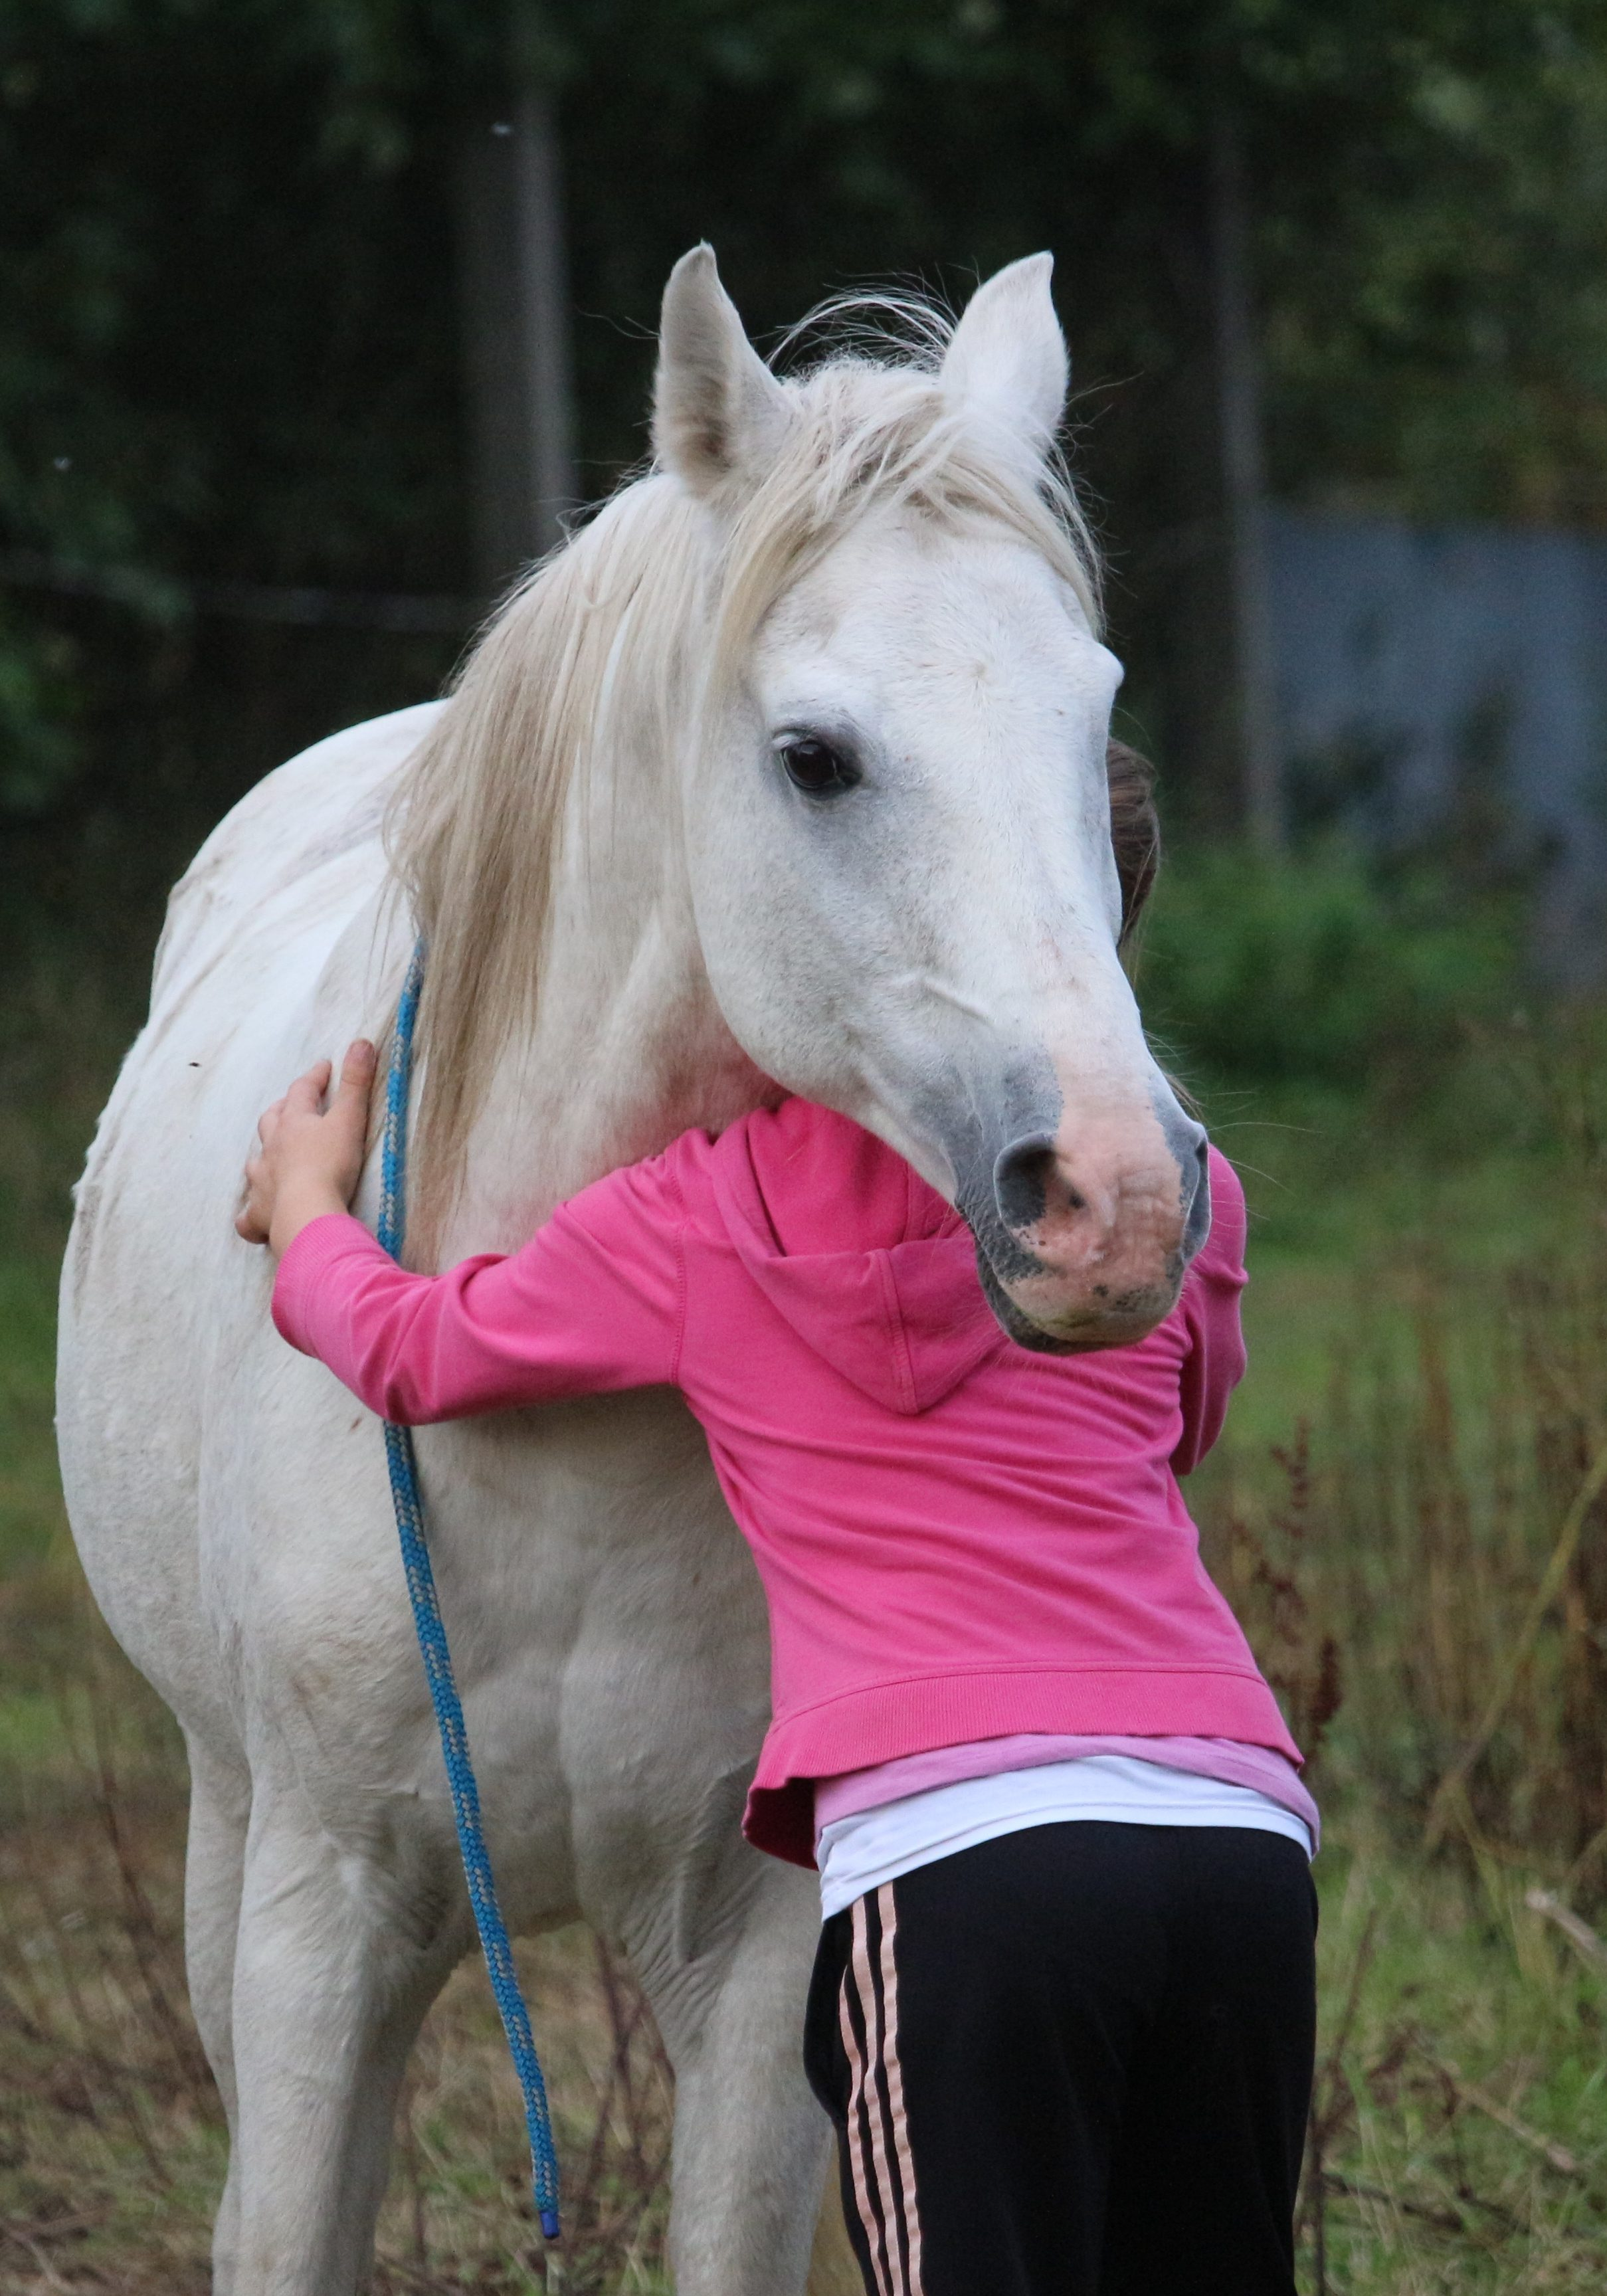 anxious child connected with horse